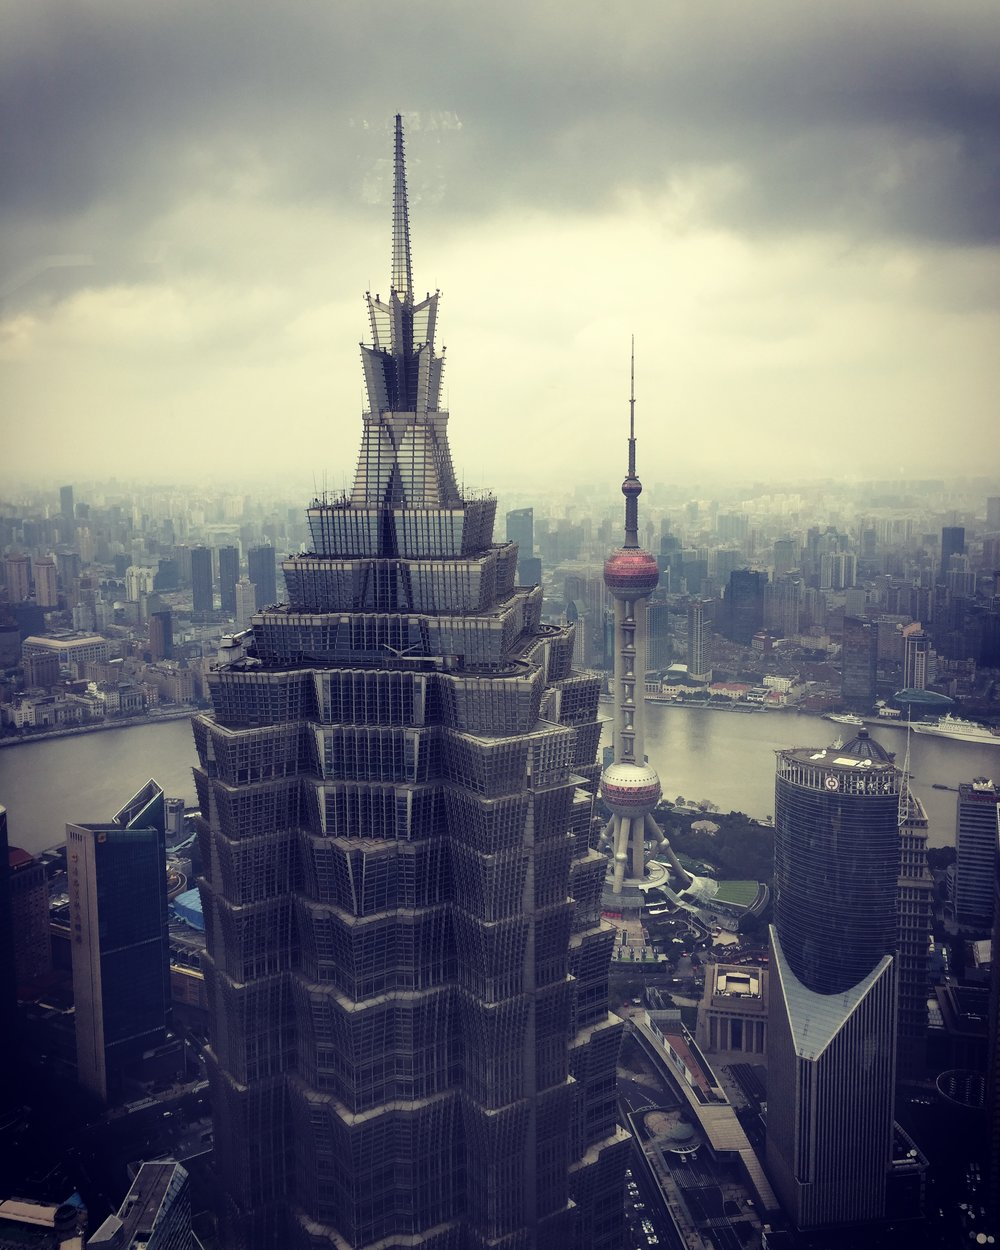 The view from the Park Hyatt Shanghai lobby. Photo from my own collection. November 2016.